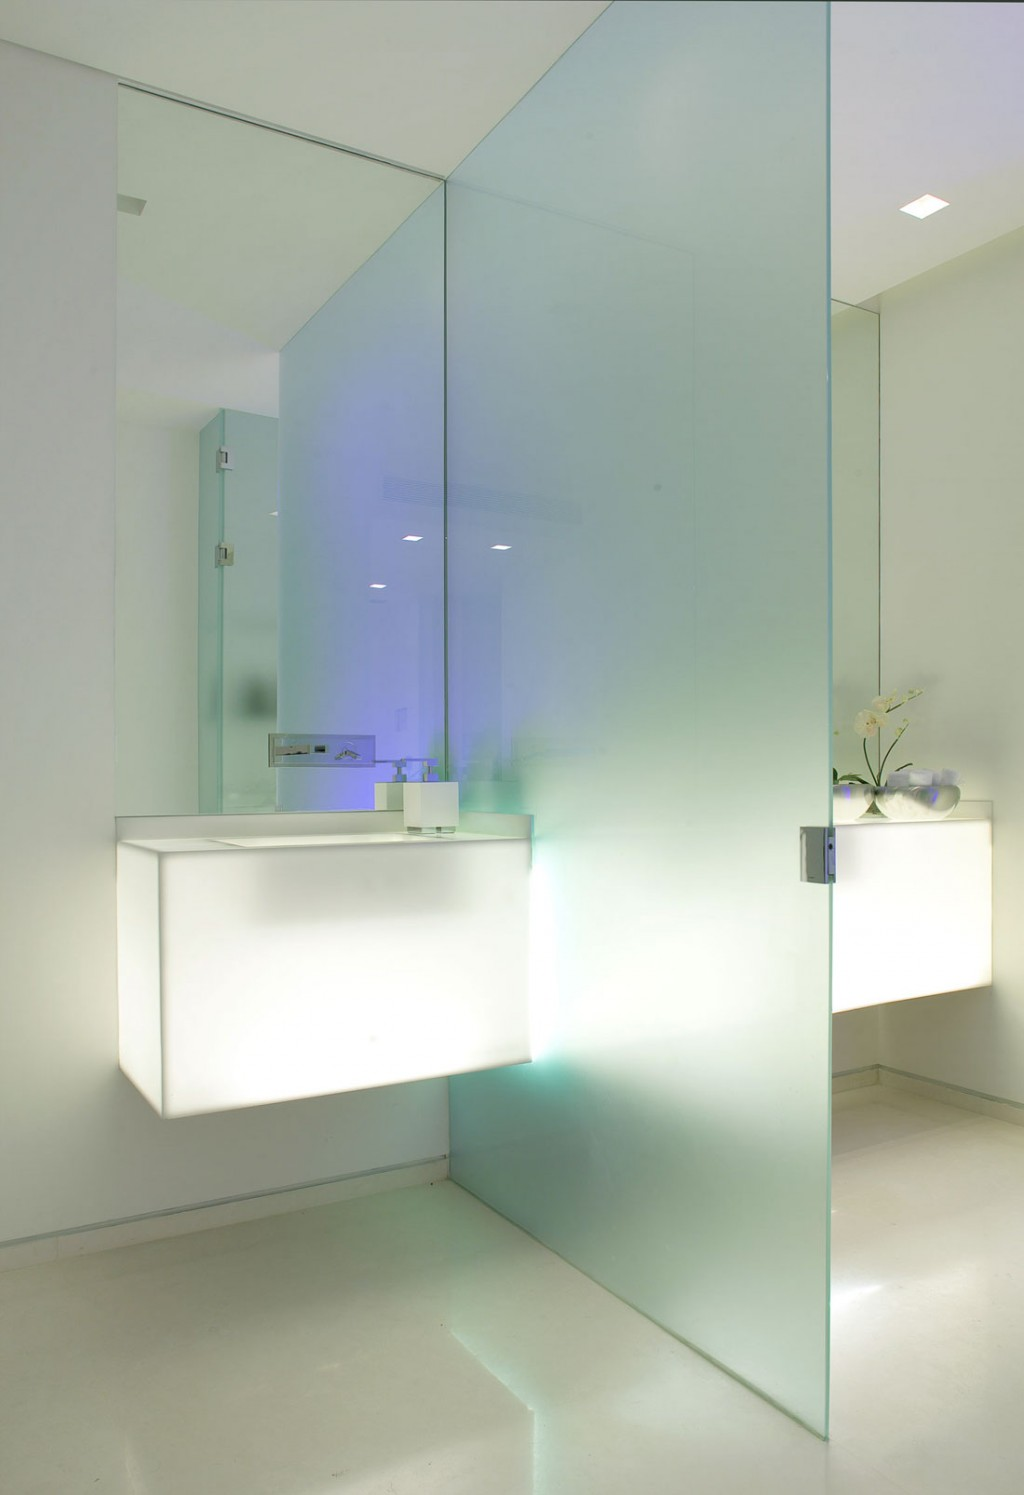 Wet Room With Modern Lighting And Glass Divider Interior